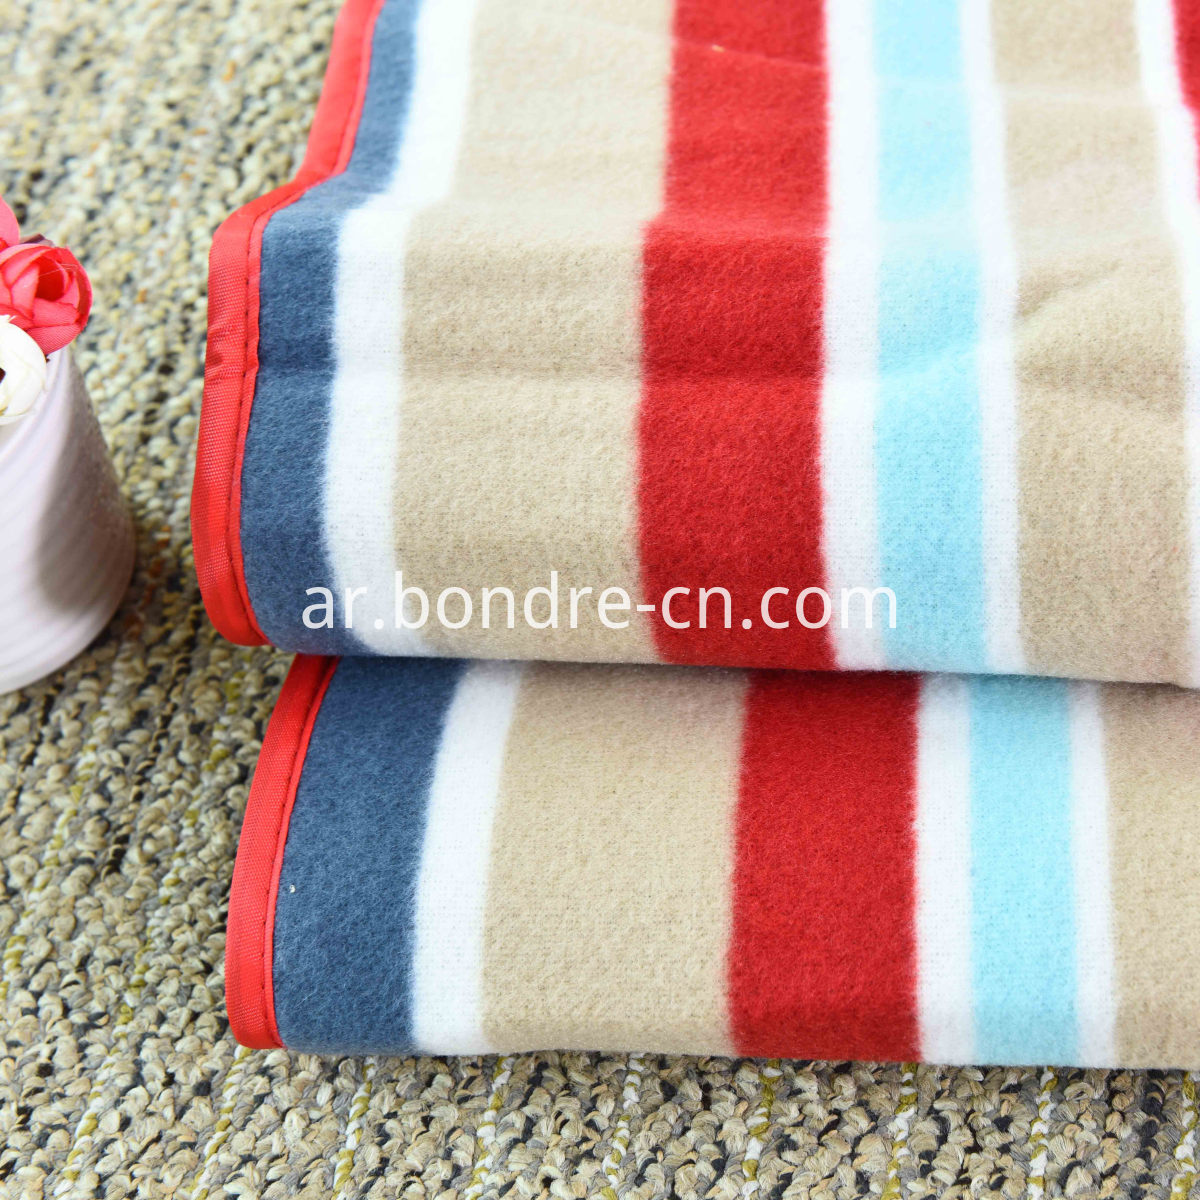 Picnic Mat With Foldable Design (3)